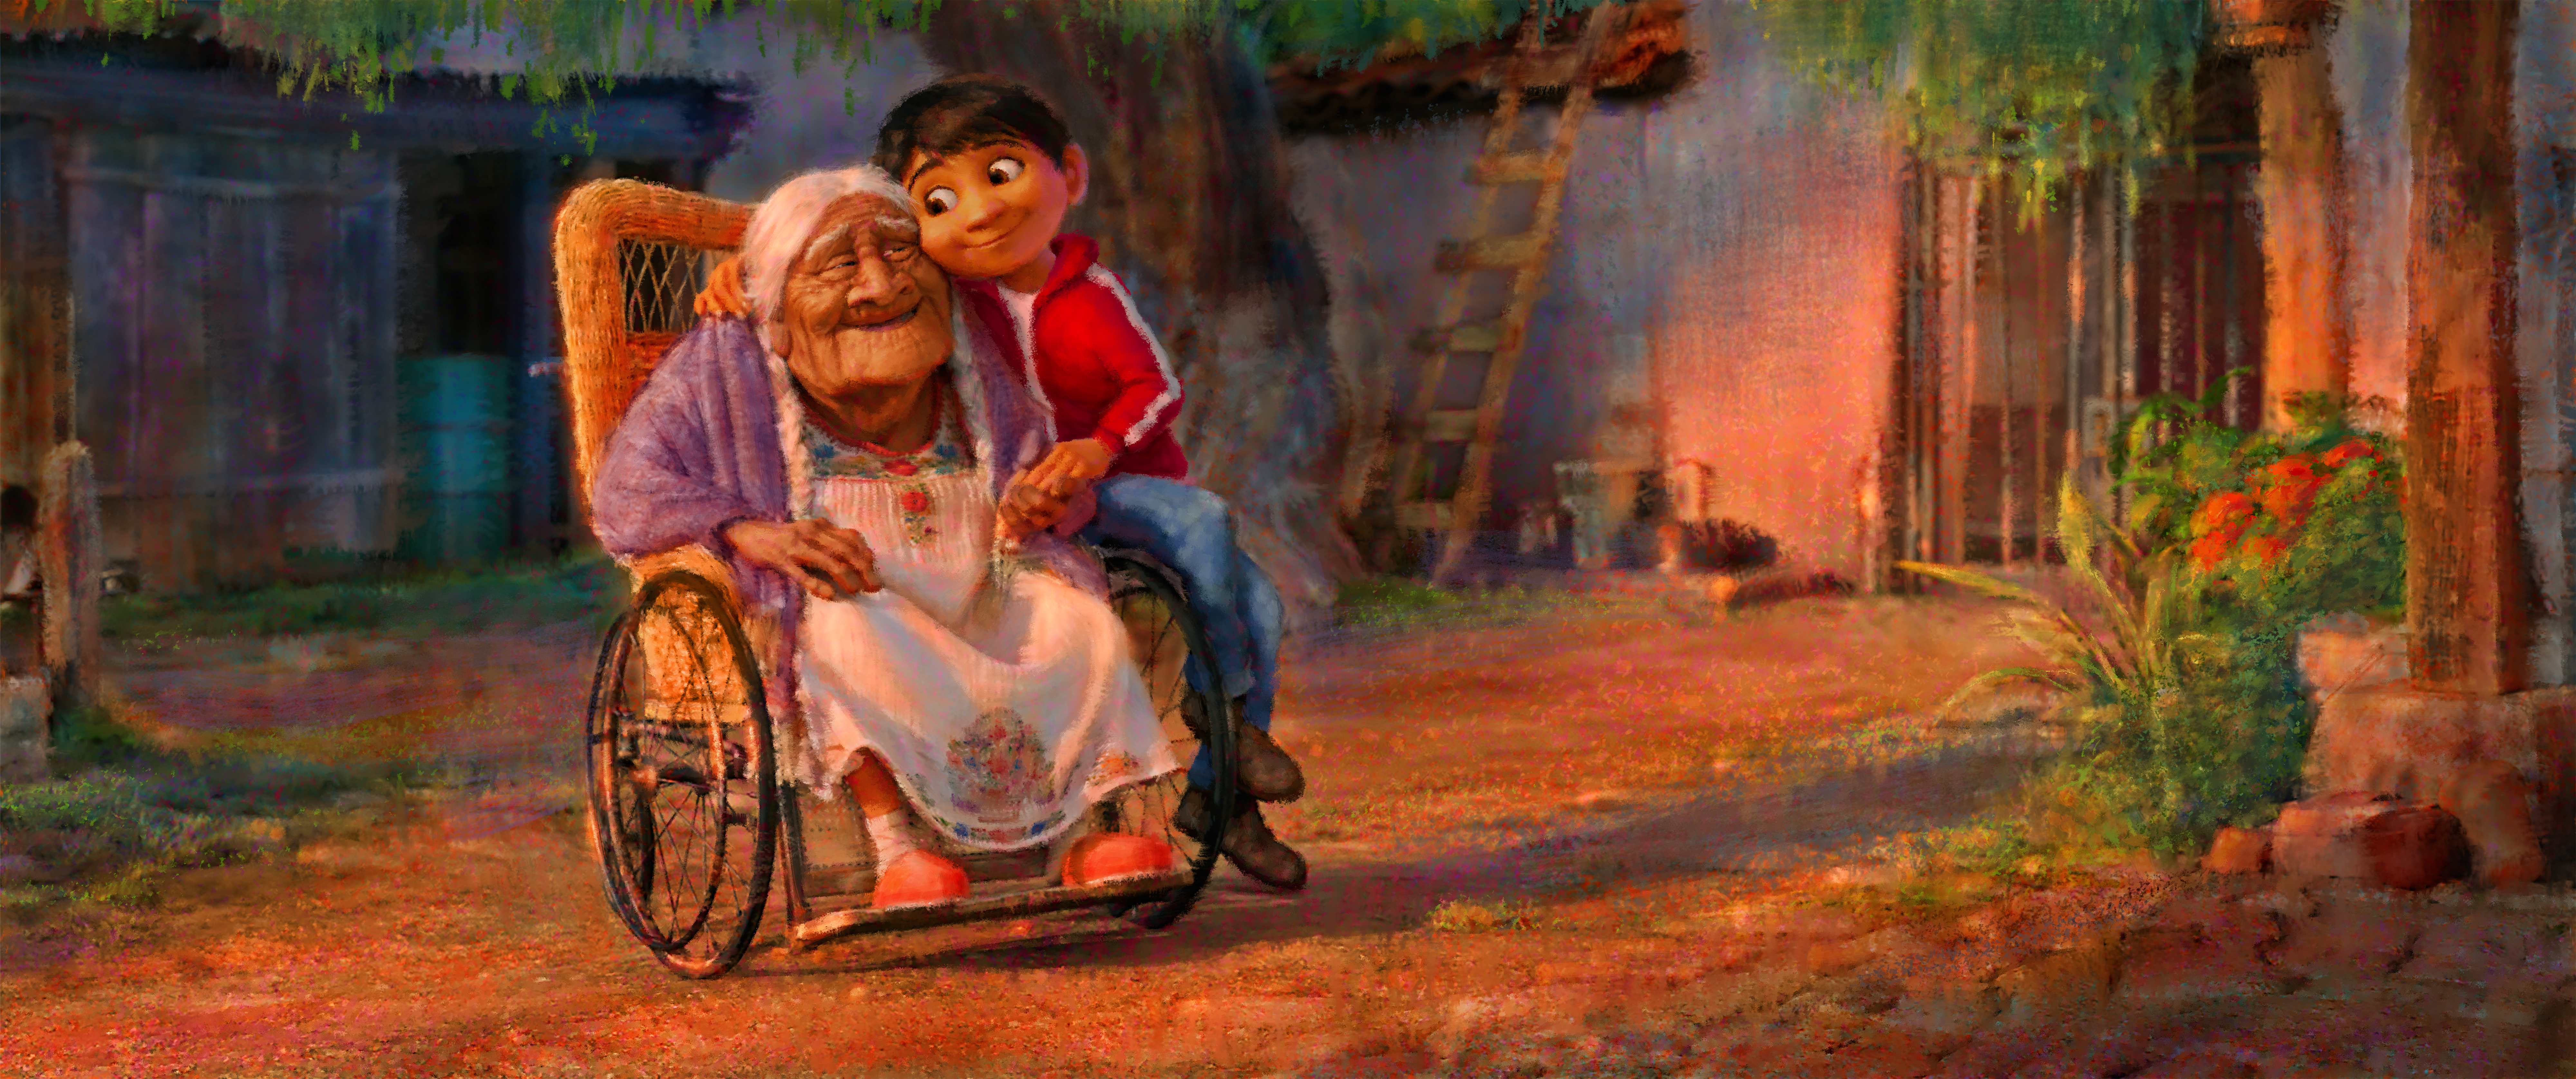 COCO - Concept art by Sharon Calahan. ©2017 Disney•Pixar. All Rights Reserved.